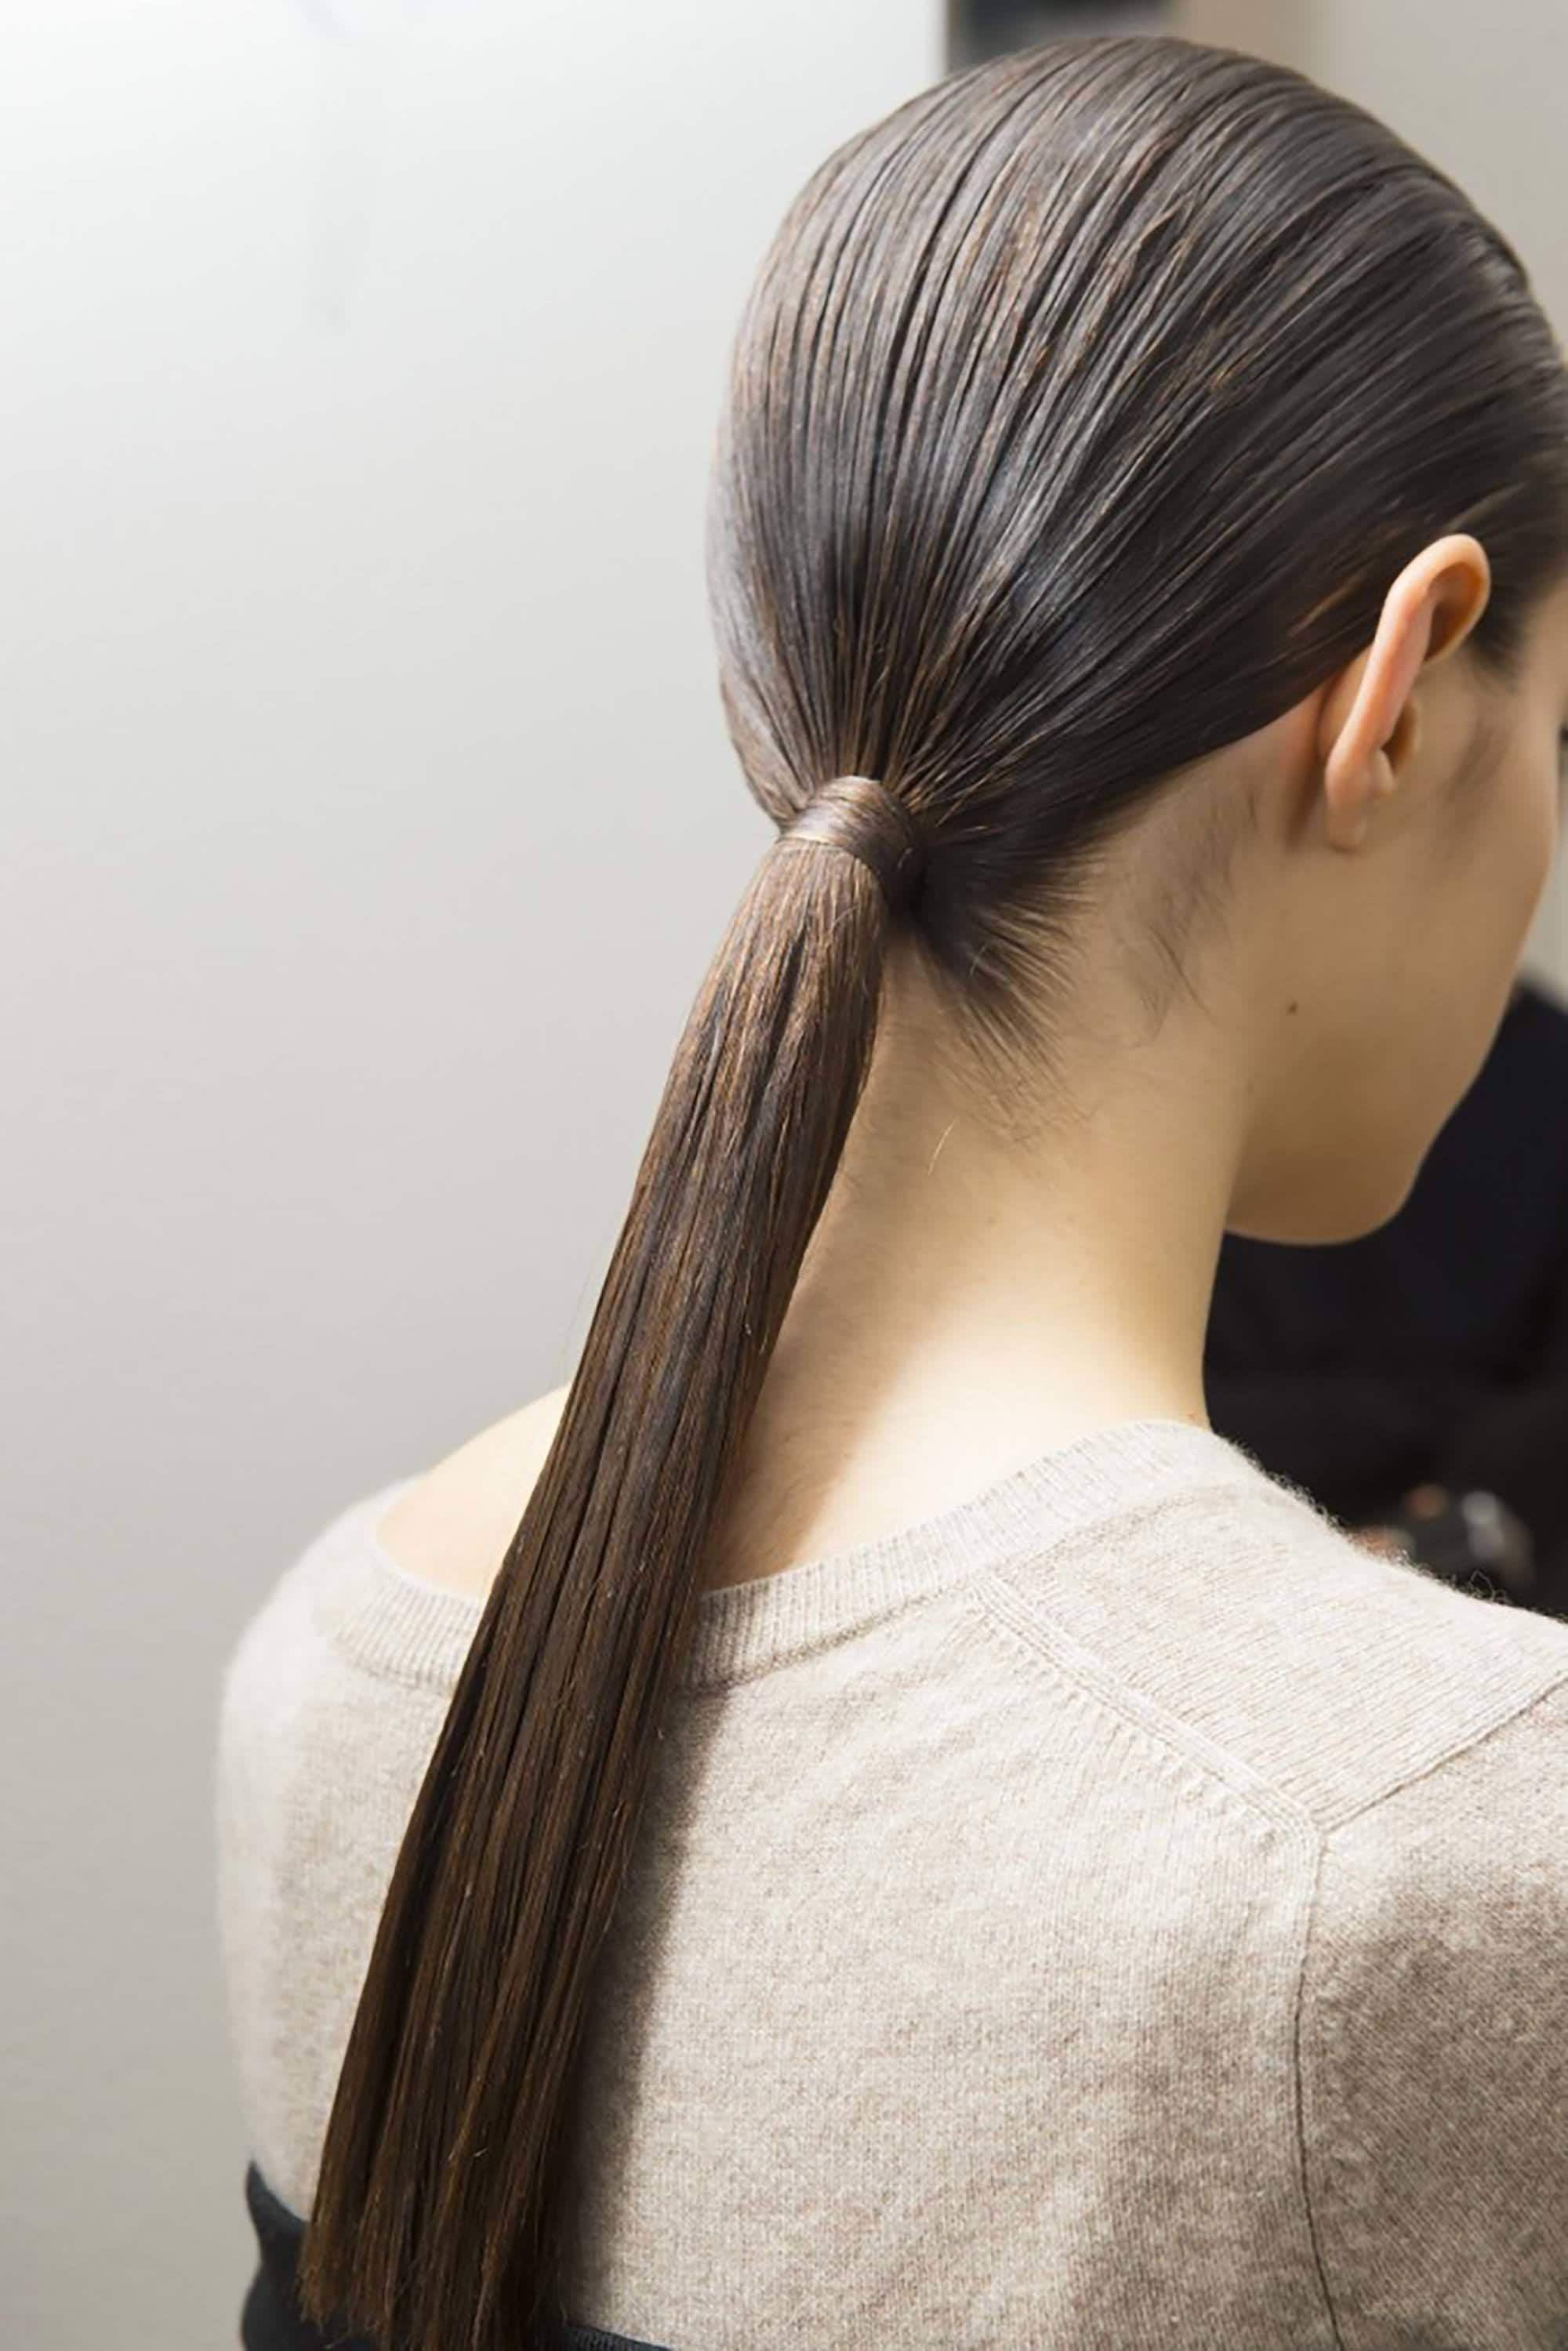 brunette woman with long, low ponytail